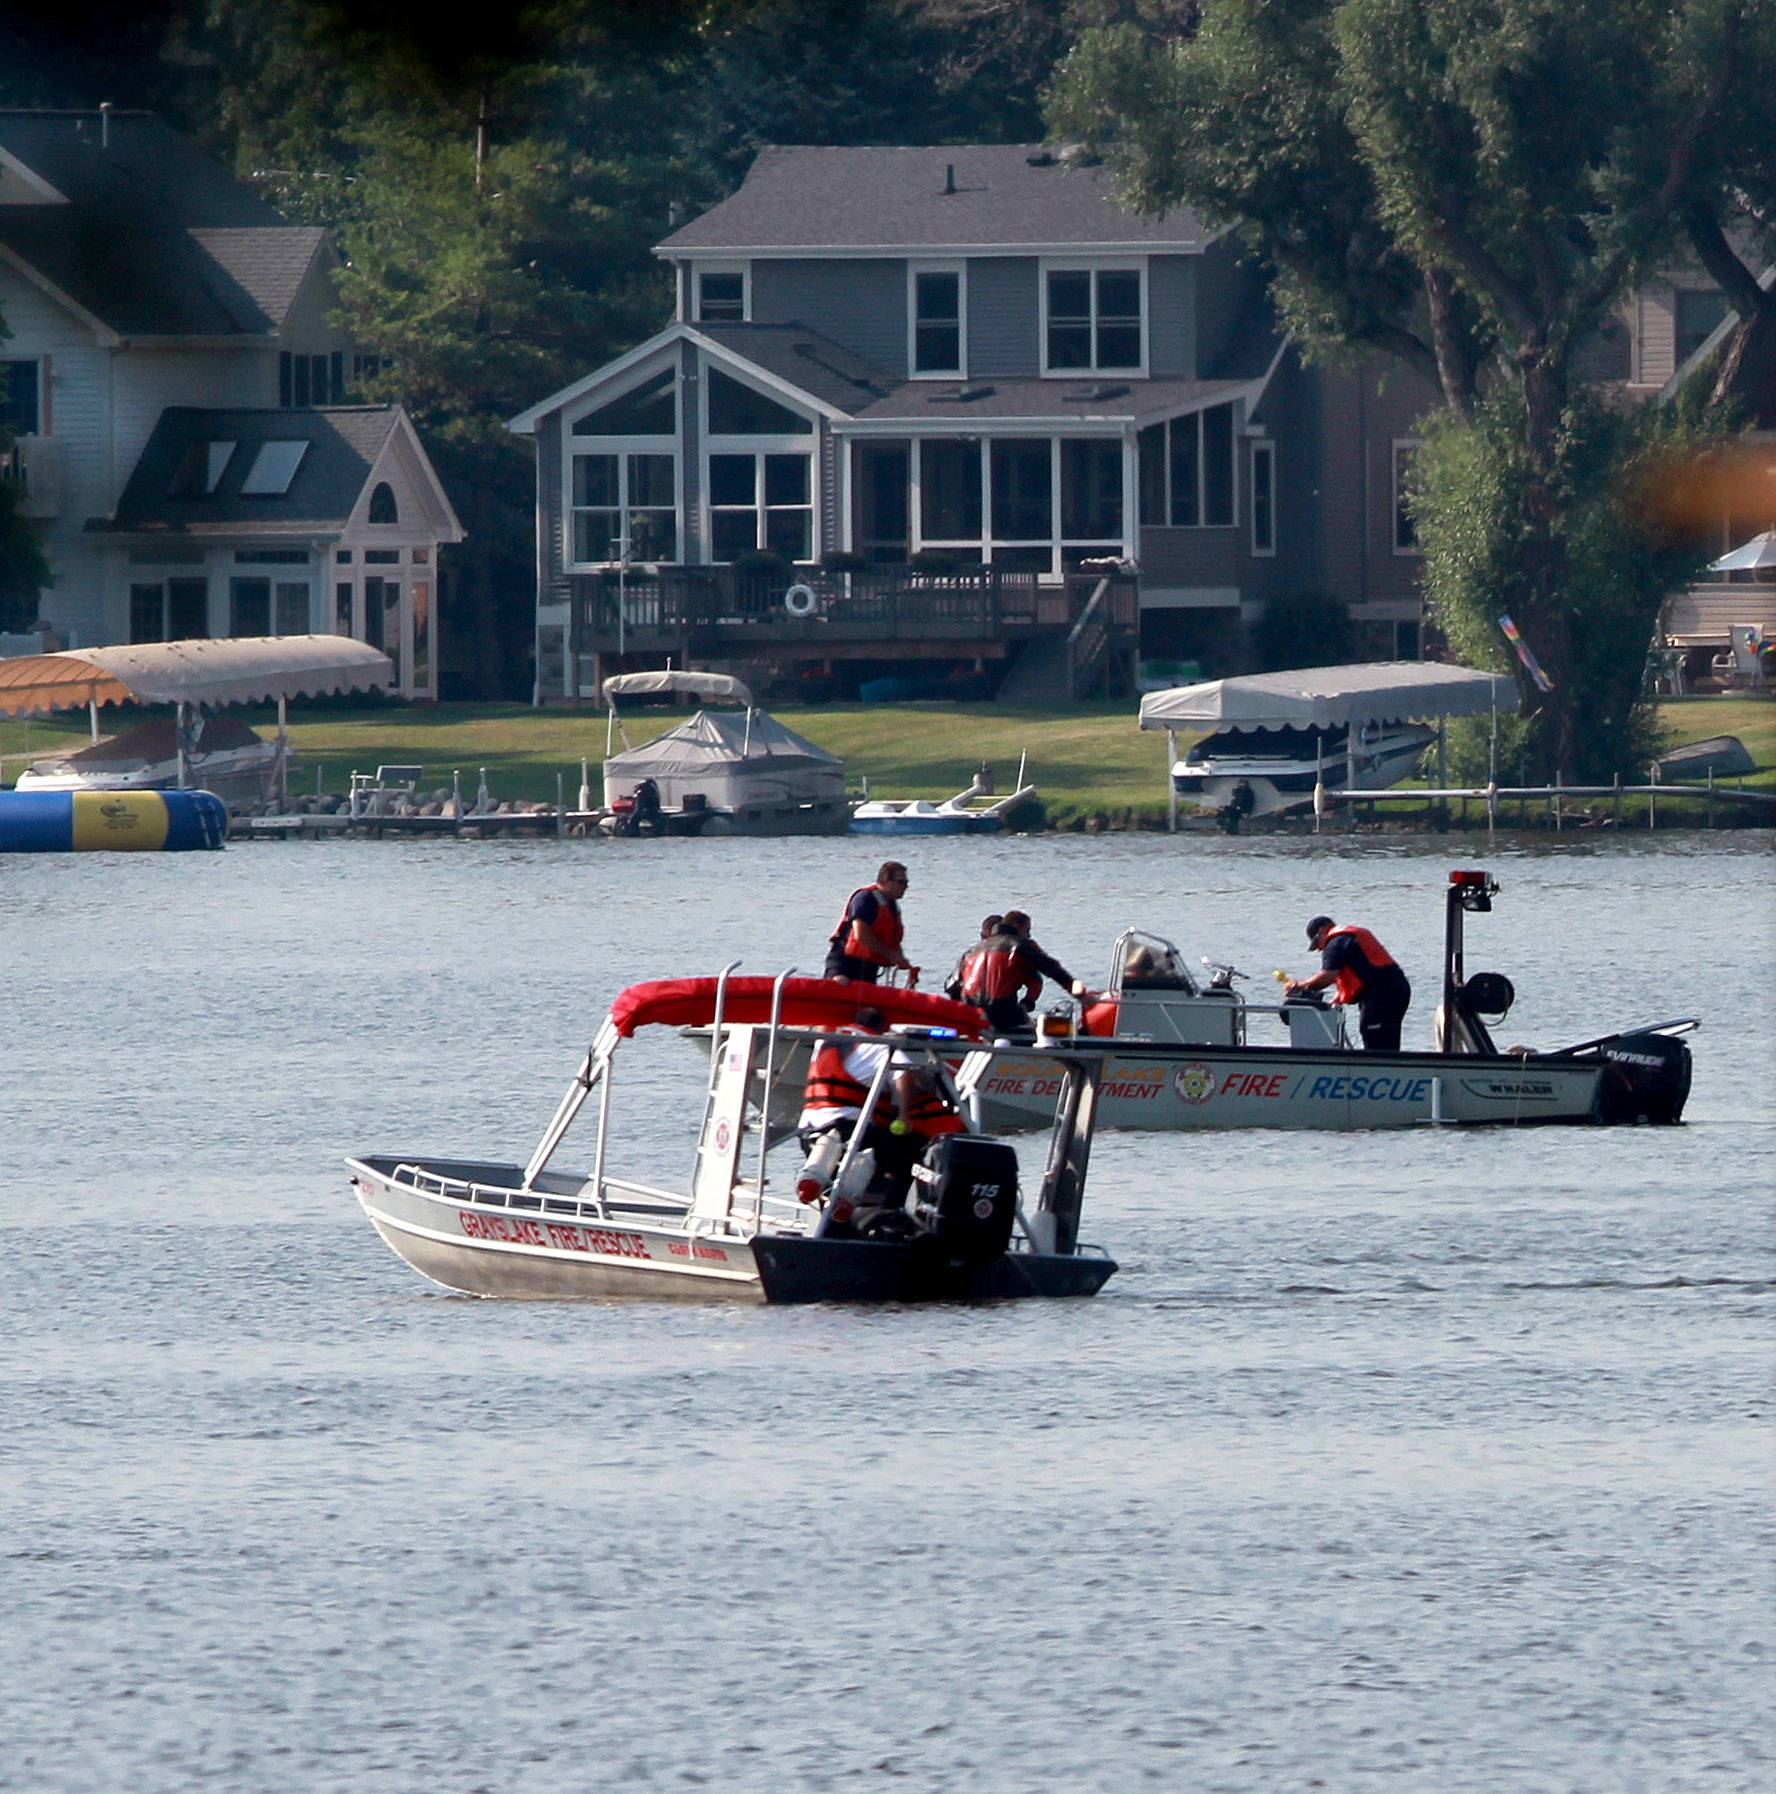 Divers discovered the body of Matt Reed, a student at Grayslake Central High School, Monday afternoon on Third Lake.